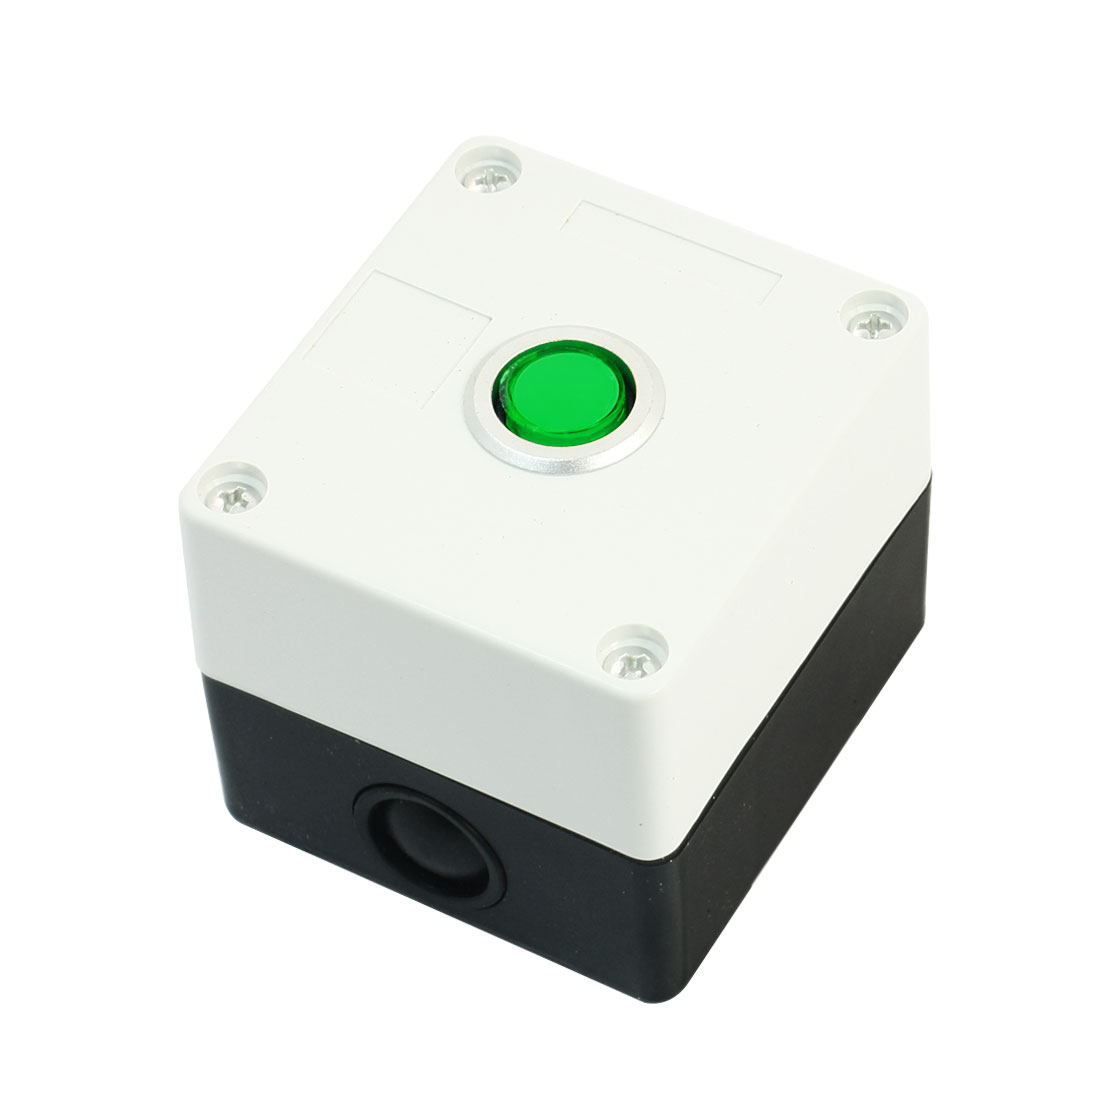 12V Rectangle White Plastic Case Green Signal Indicator Light Pilot Lamp Bulb Control Station Box